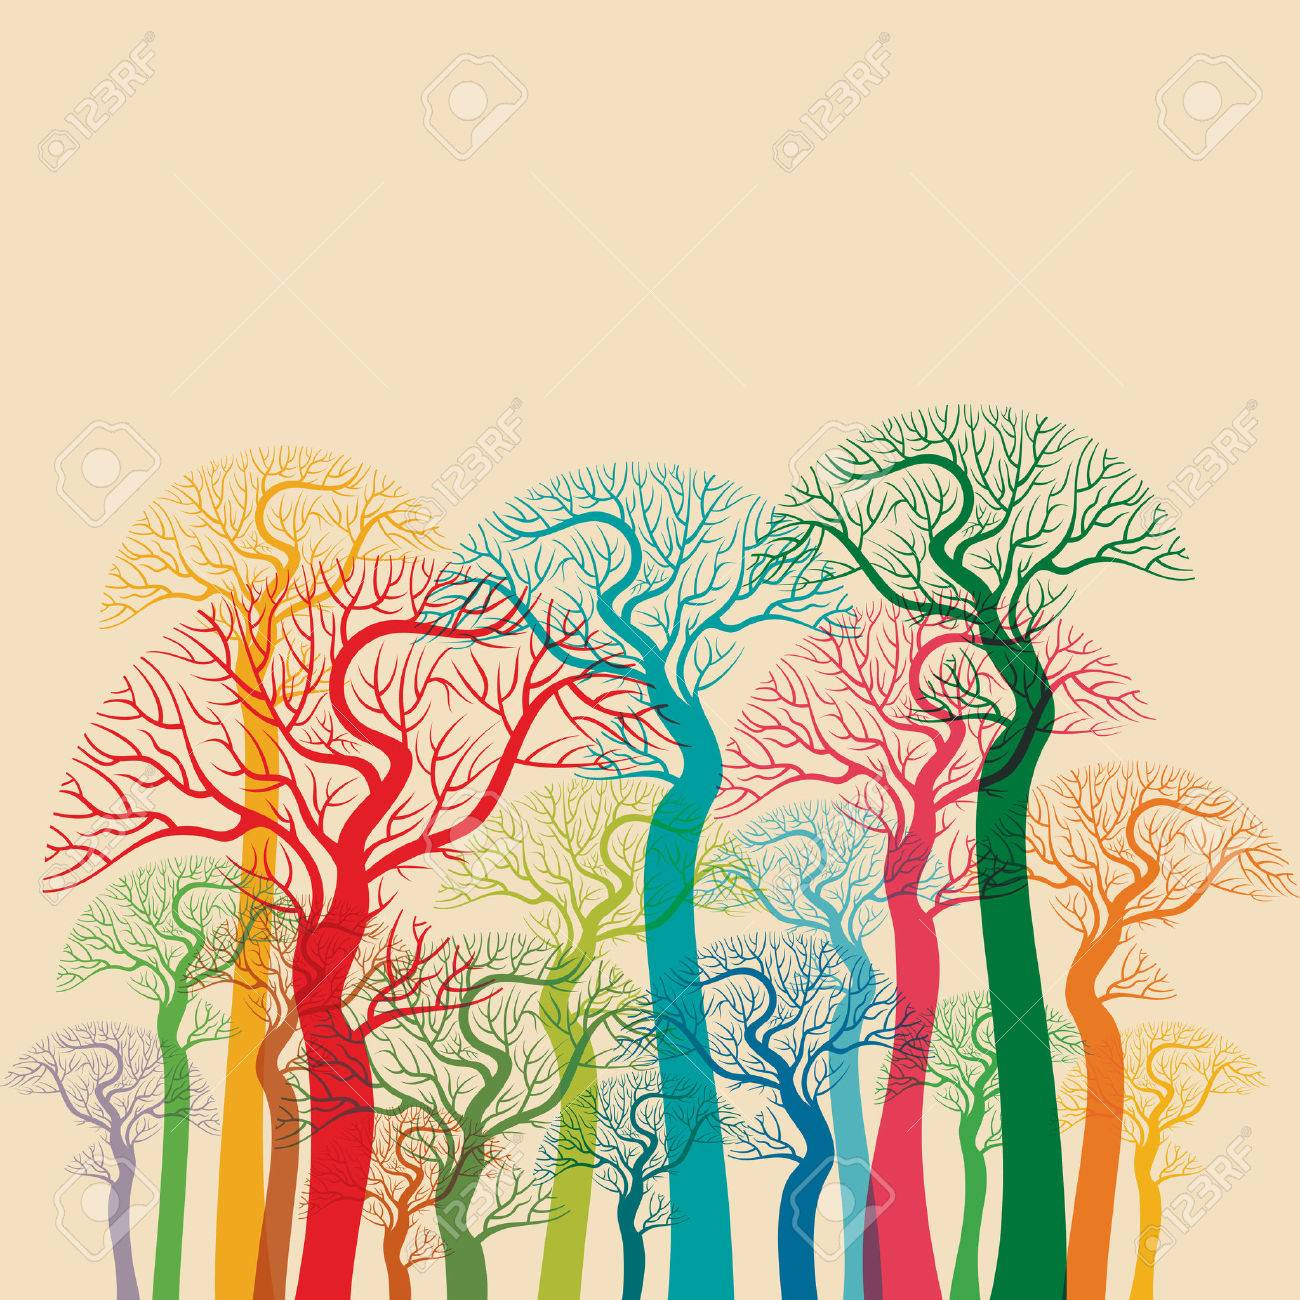 autumn abstract tree forest - 61522807